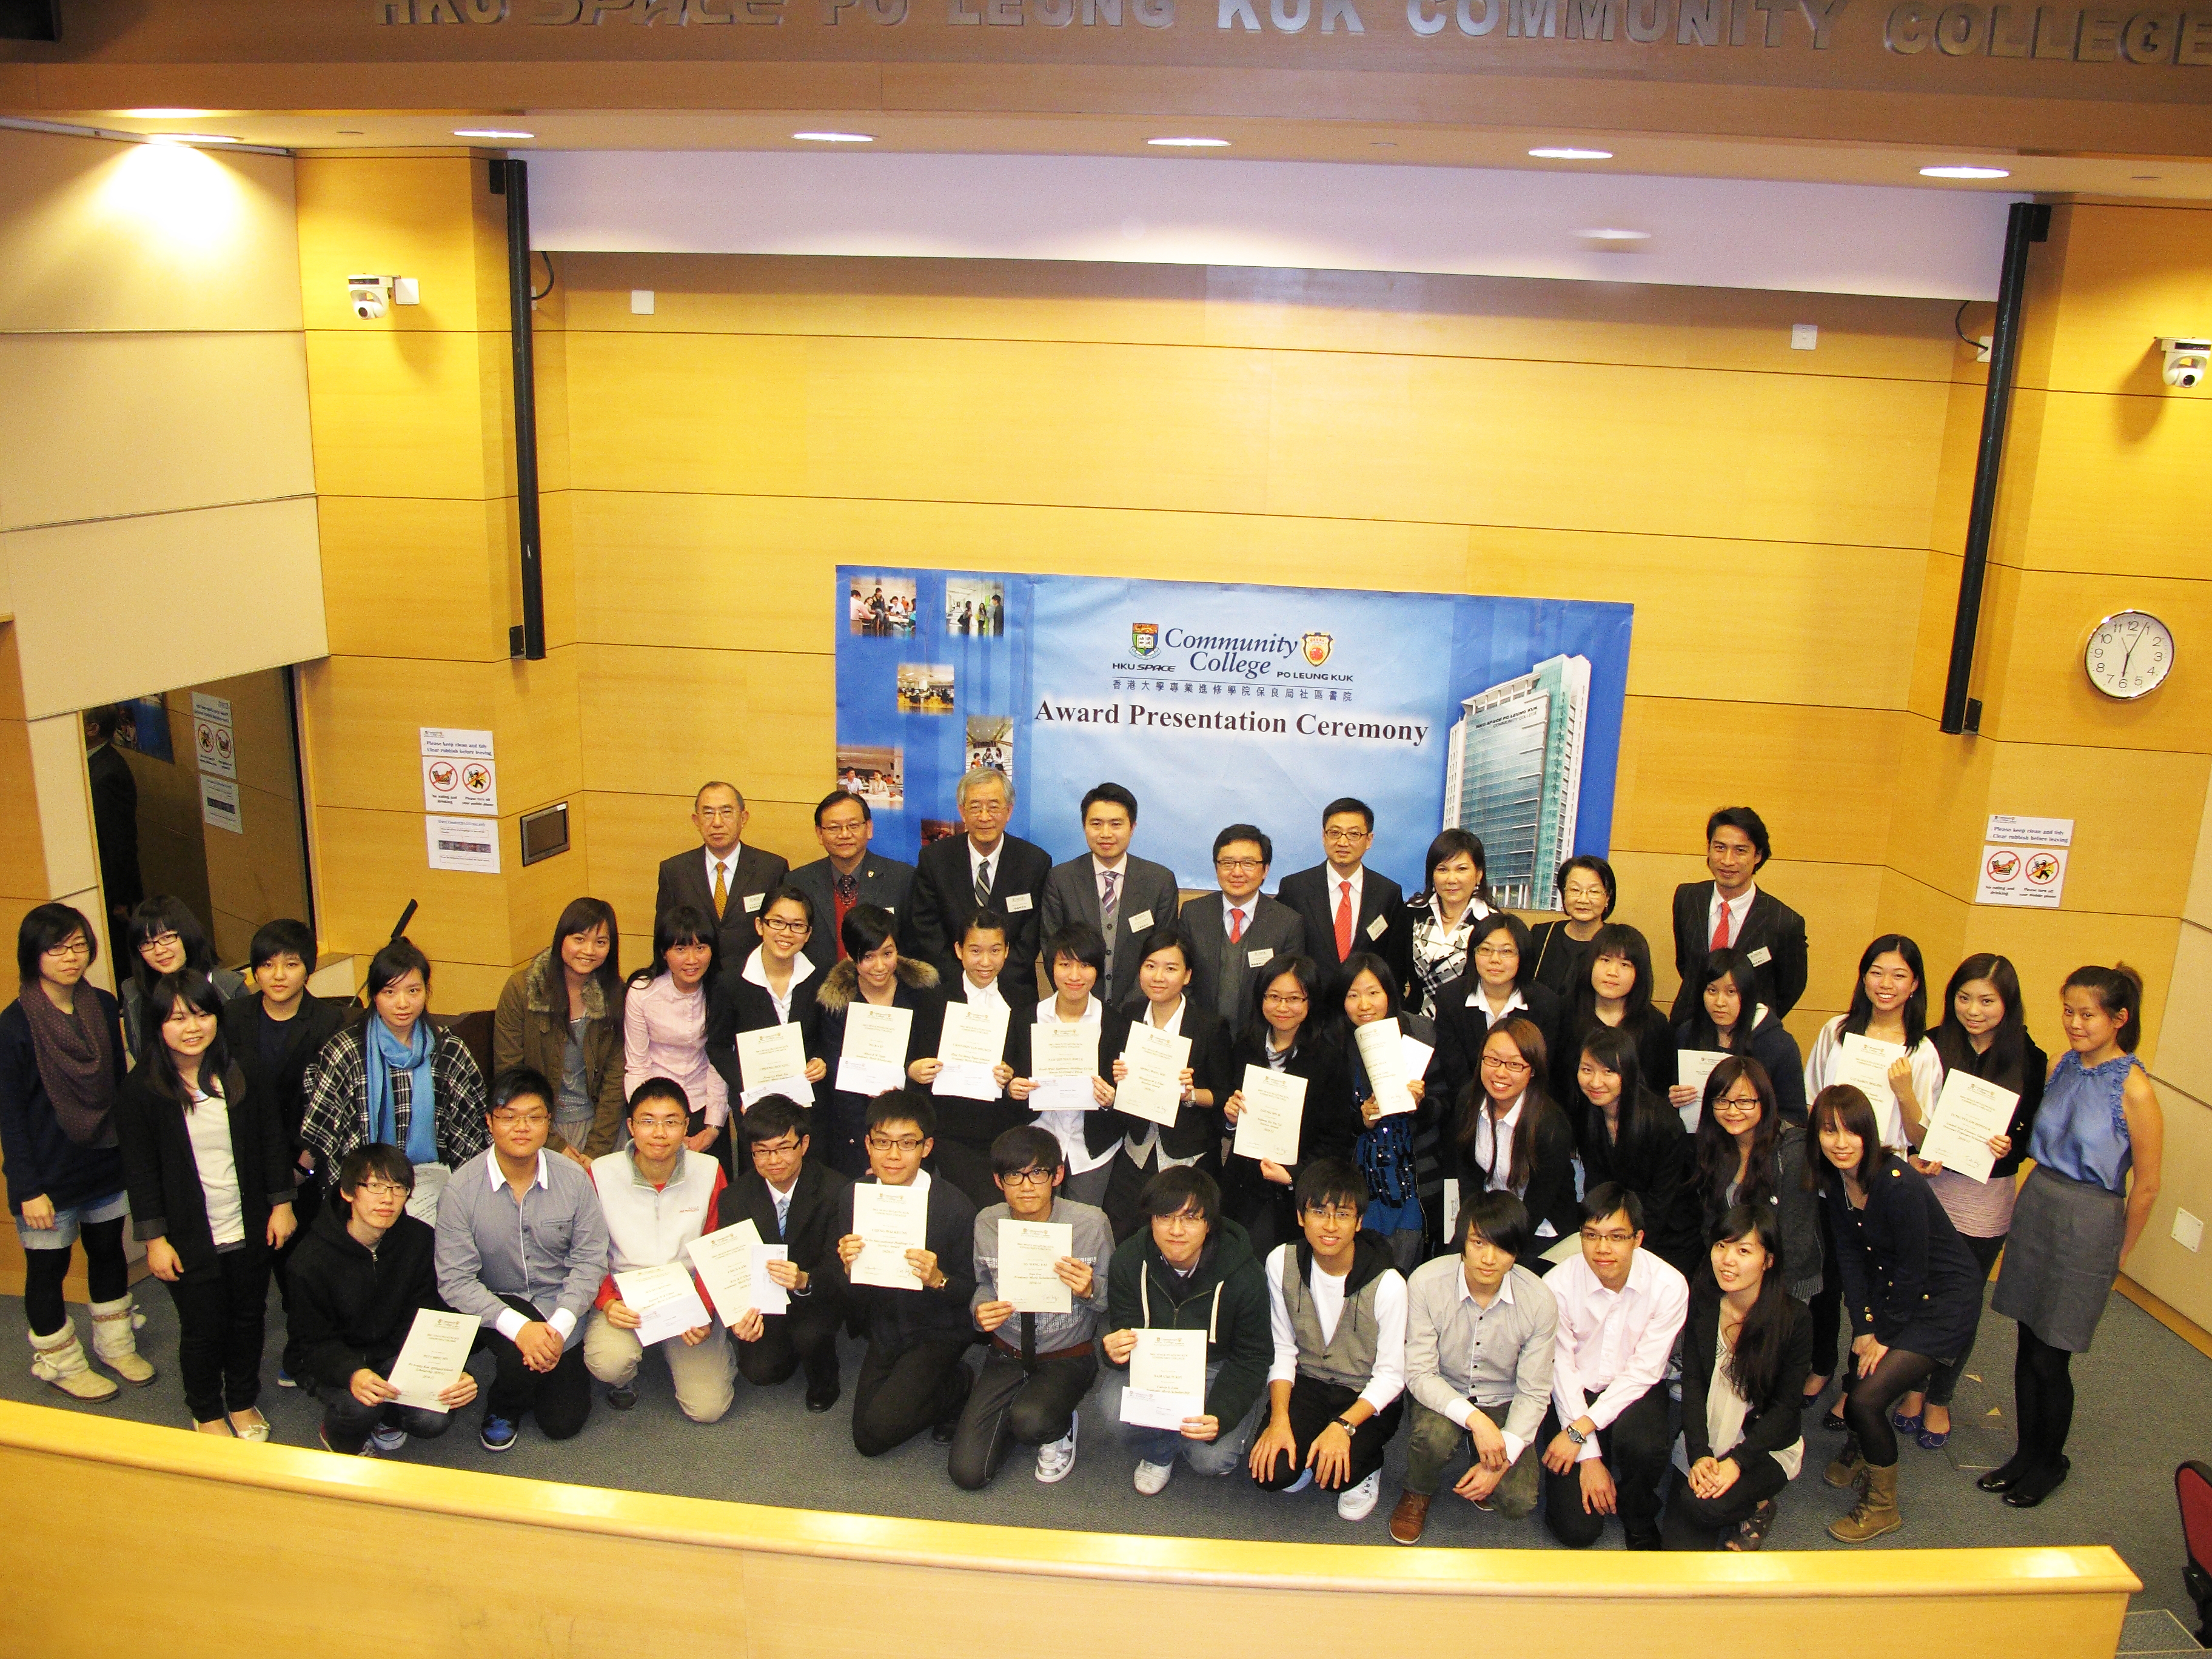 Award Presentation Ceremony 2011 - Photo - 47